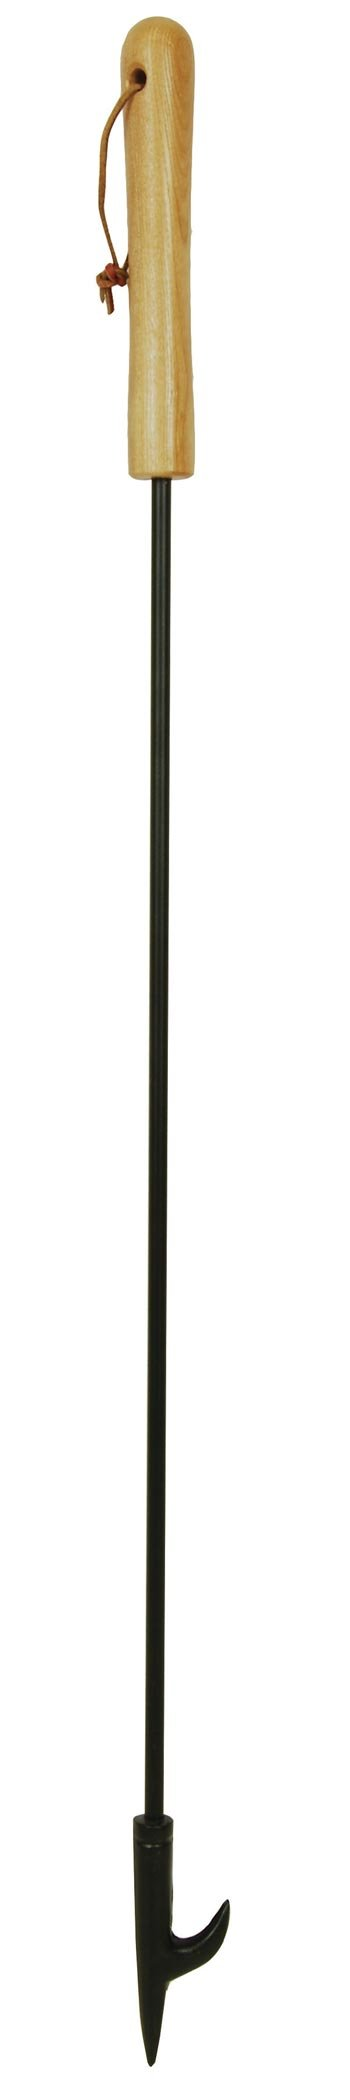 Campfire Fire Place Tender Poker, Extra Long 36-inch by Wilcor